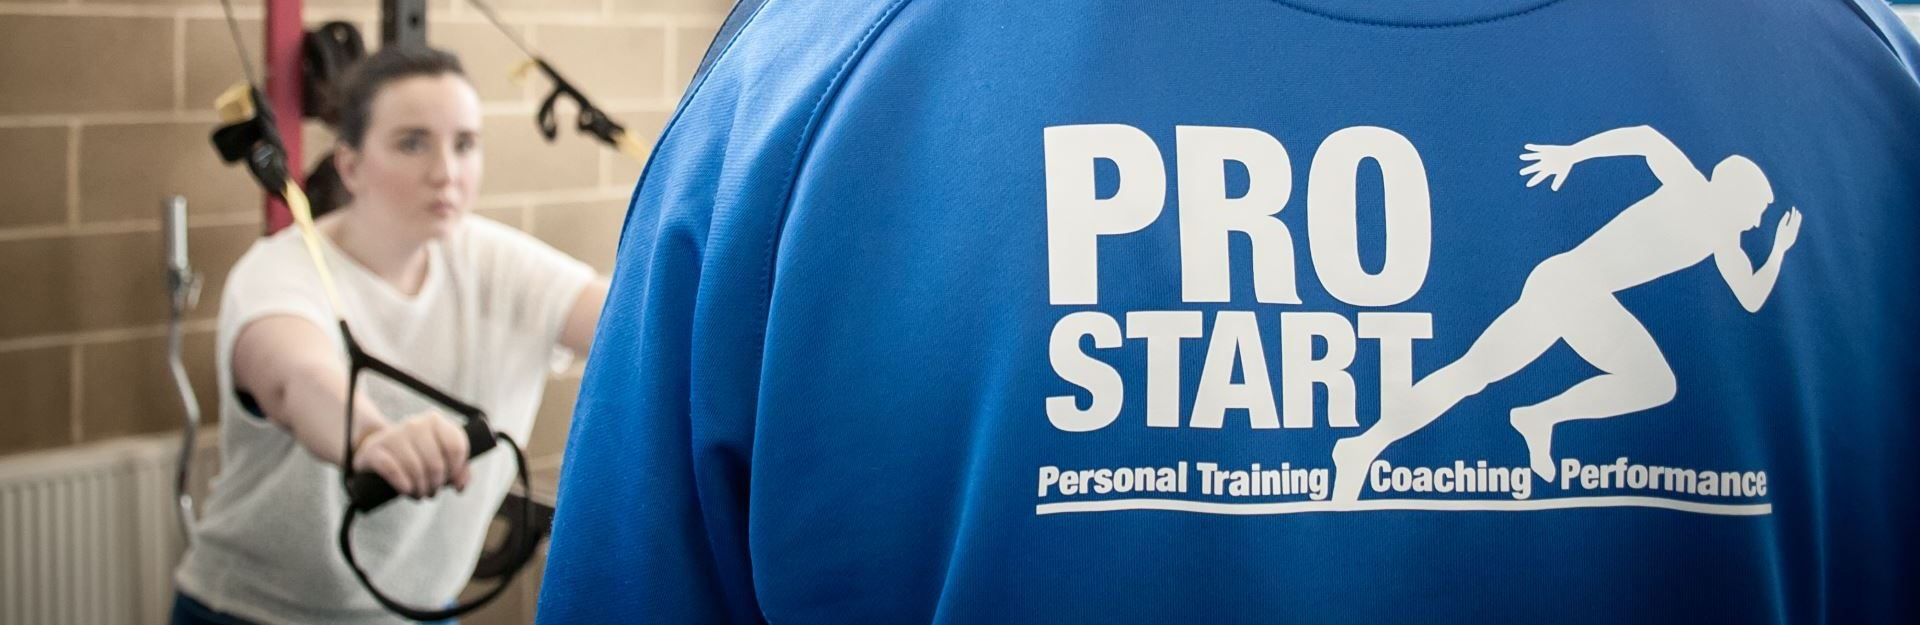 Personal Training in Aylesbury